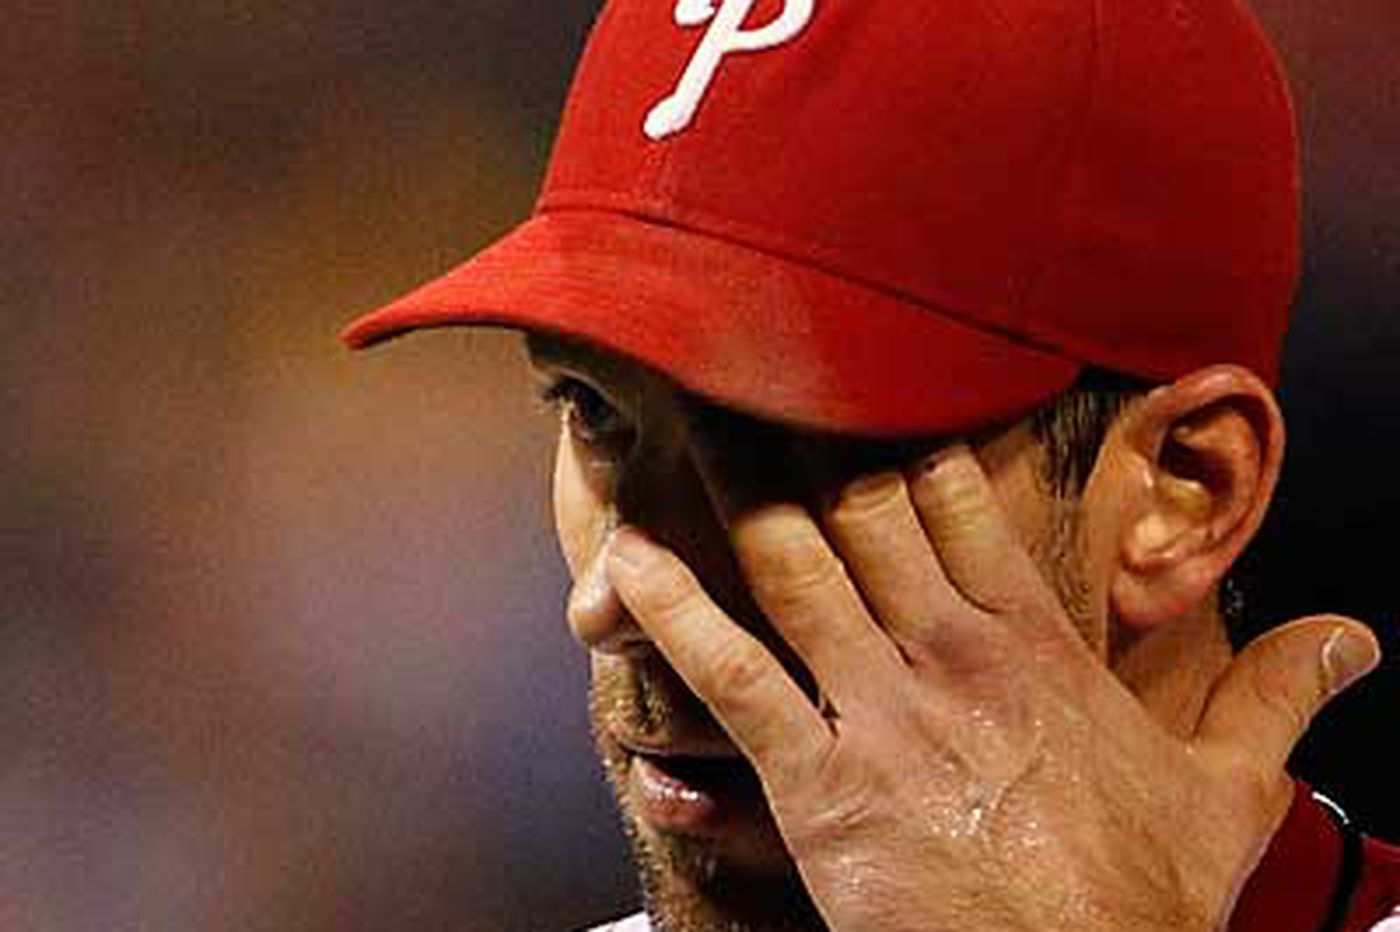 Phillies drop two, Pence injured